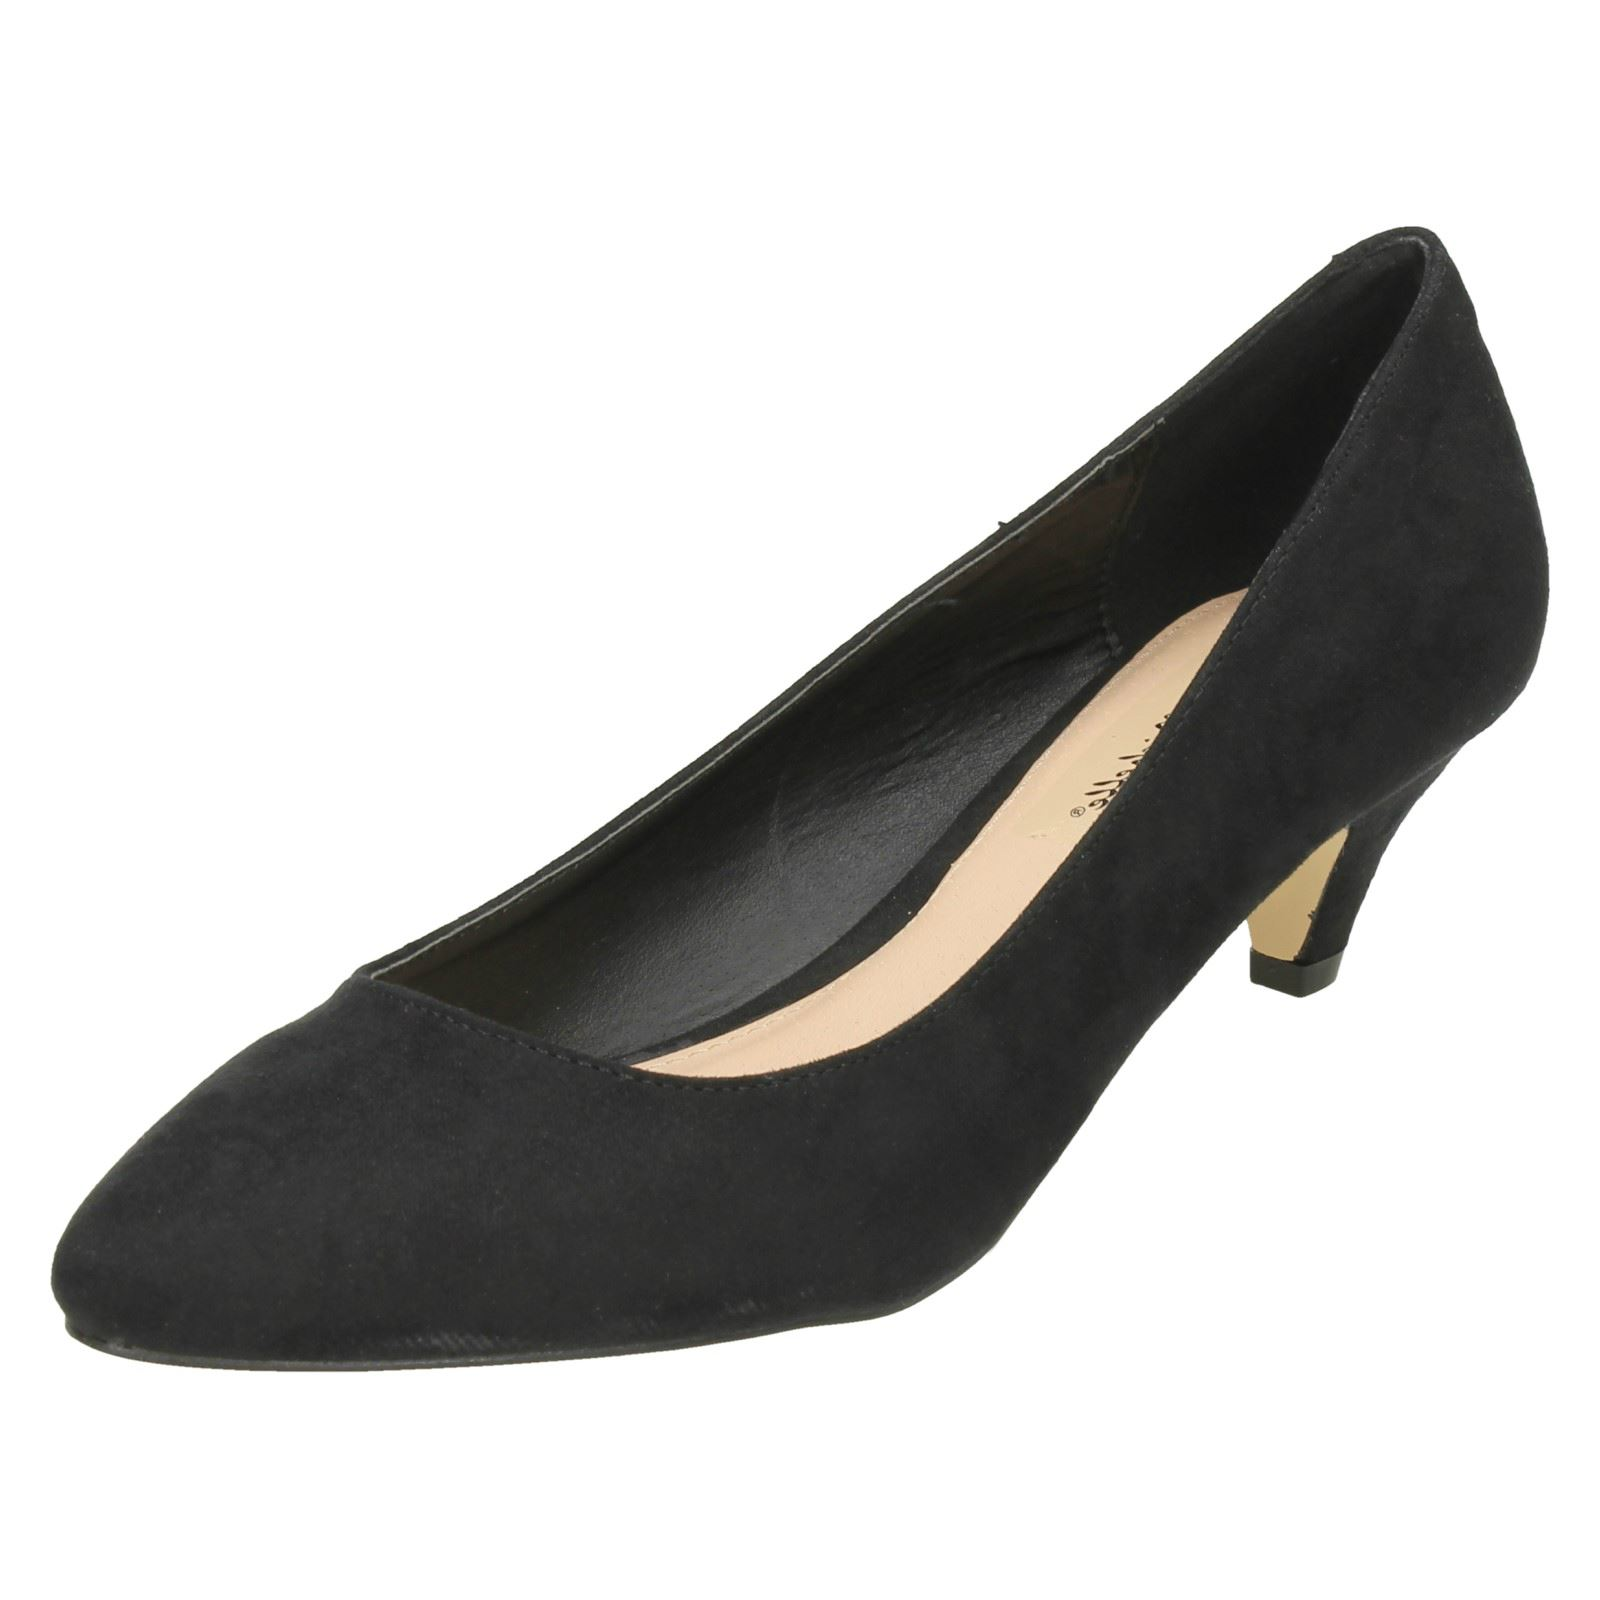 Anne Michelle Court Ladies Mid Heel Pointed Toe Court Michelle Shoes - F9965 fa71c6